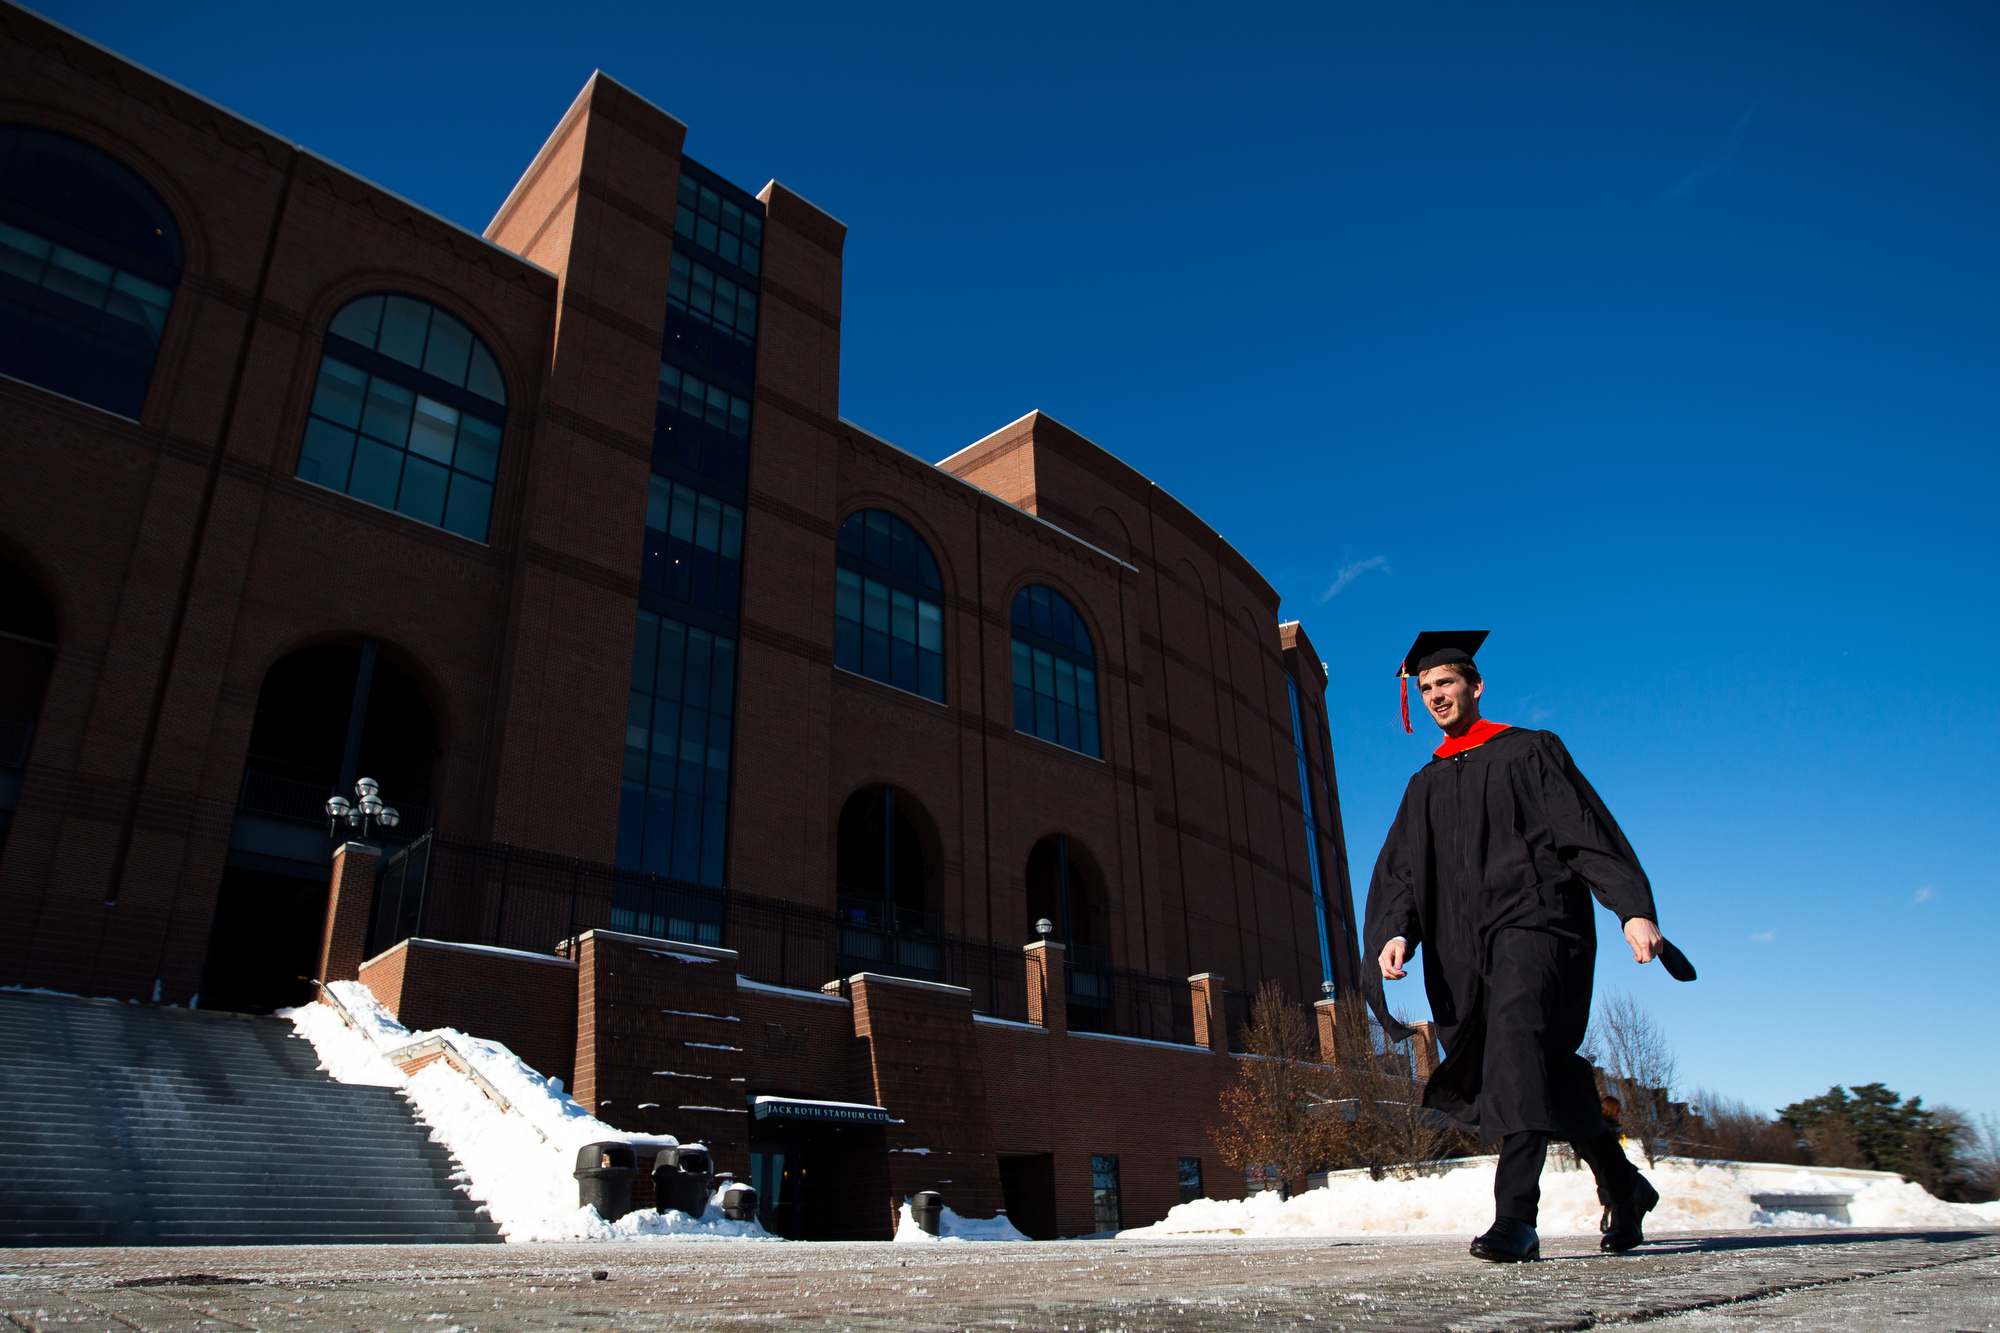 Florian Jule, graduating with a masters of science in aerospace engineering, walks past Michigan stadium before the University of Michigan winter commencement on Sunday, December 18, 2016. Jule and about 1,000 other students graduated at the Crisler Arena on Sunday. Matt Weigand | The Ann Arbor News